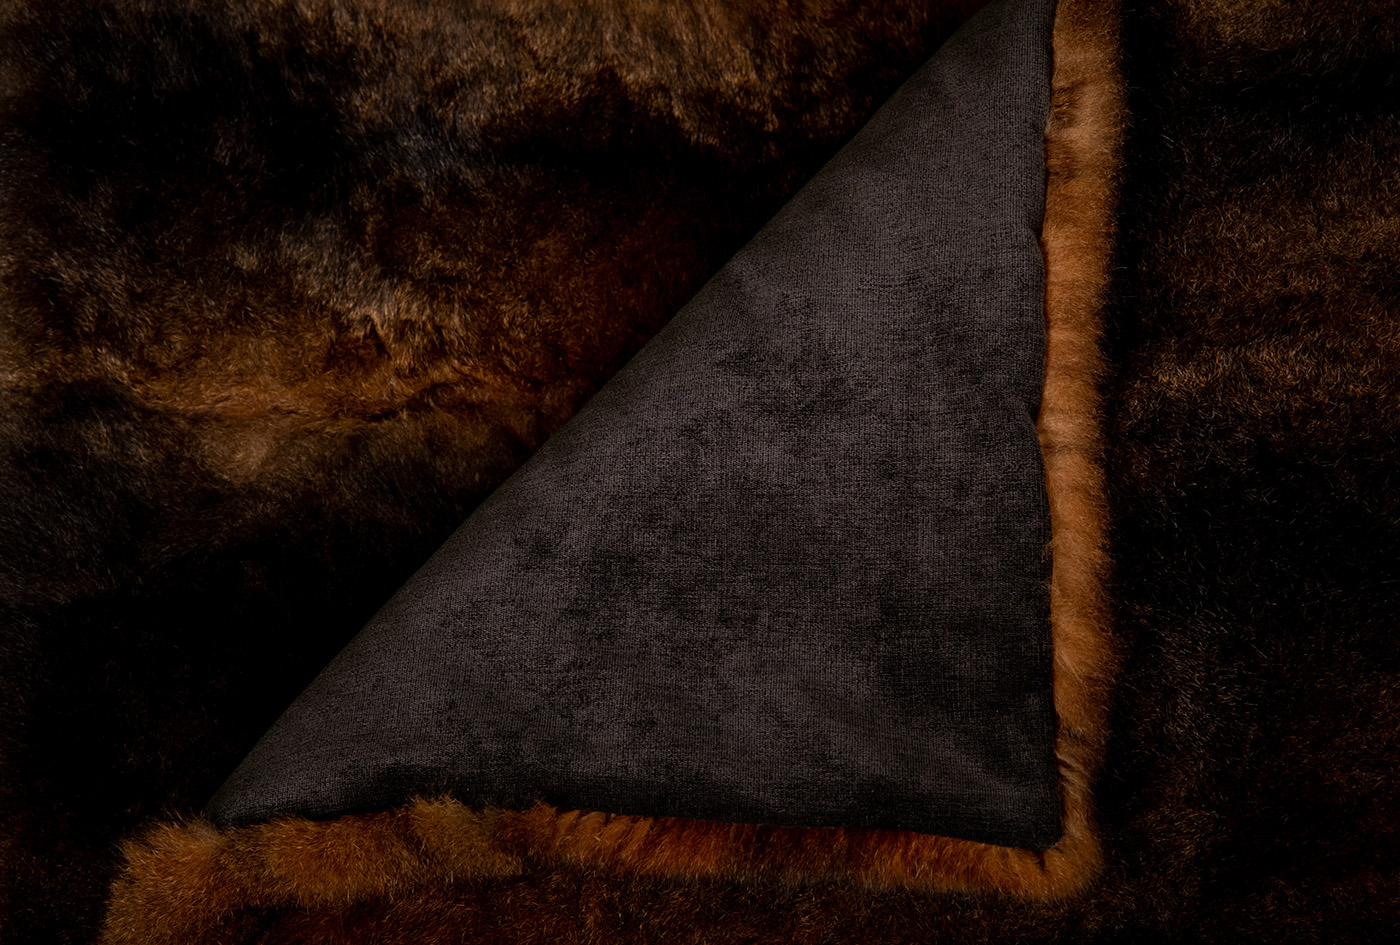 Five simple ways about how to quickly tell if fur is real or fake